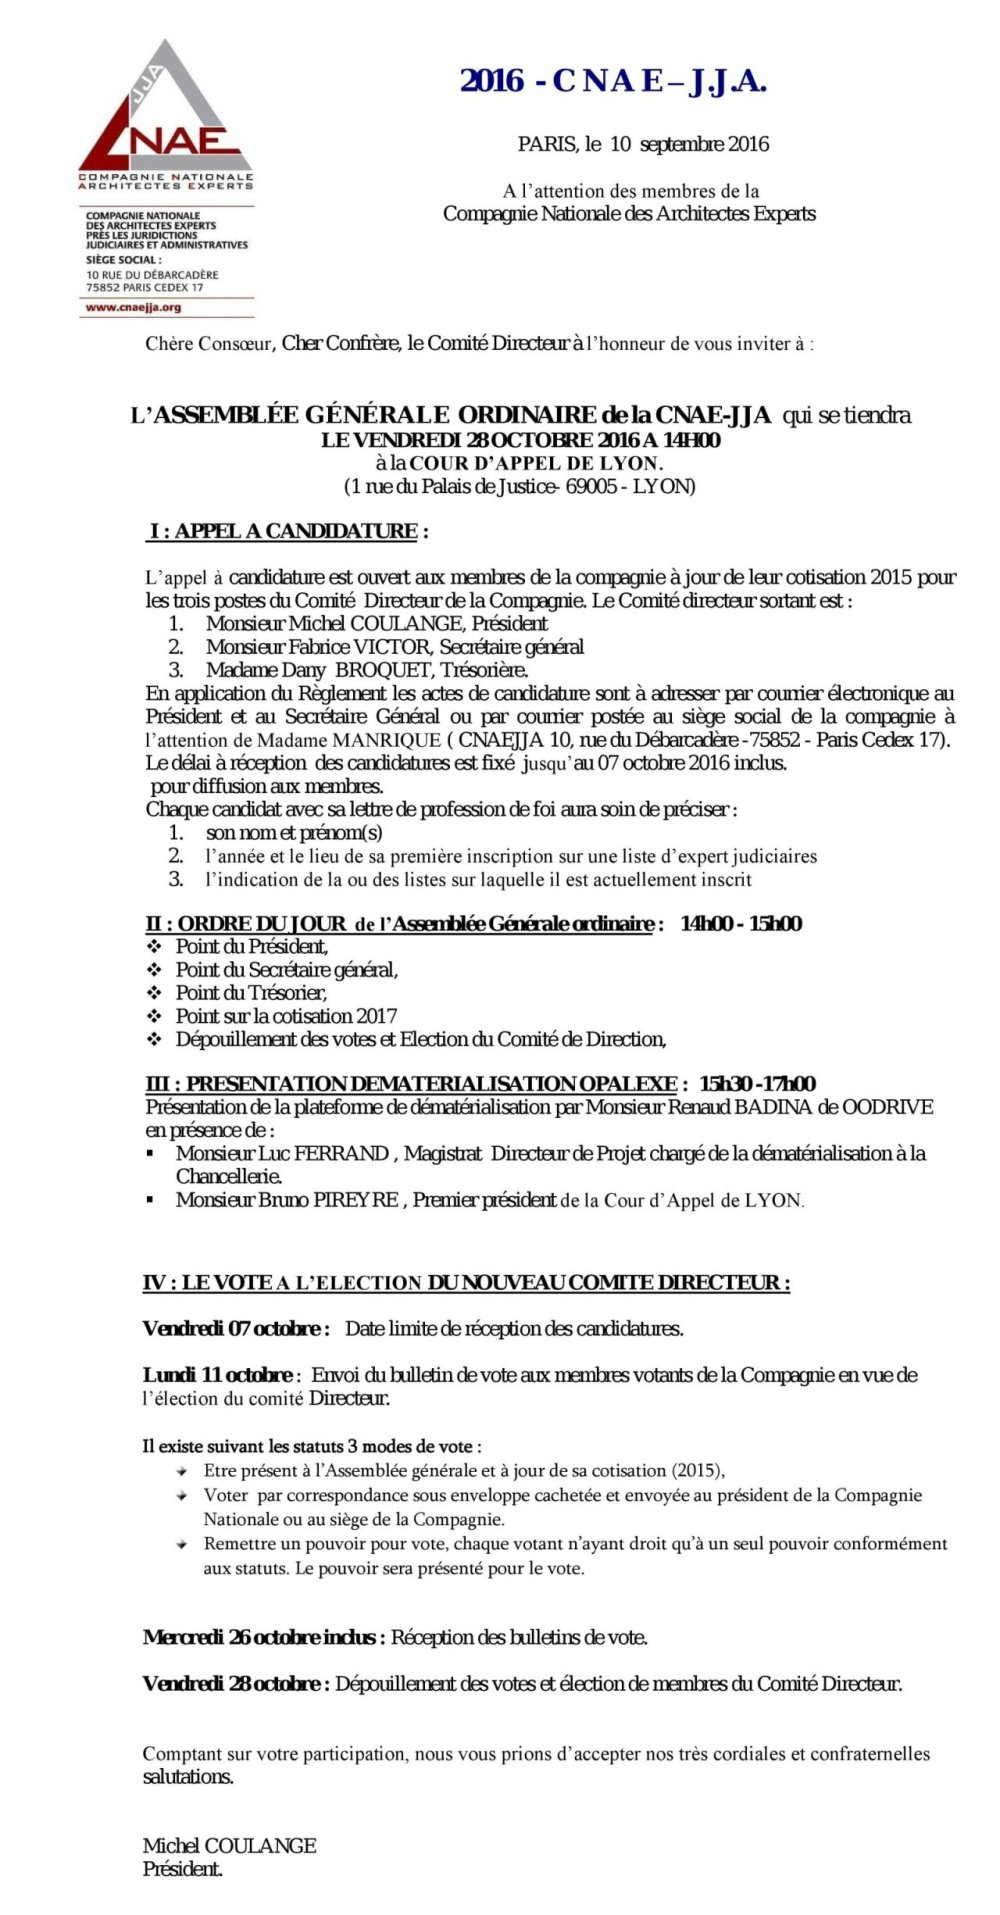 2016-09_ag-ordinaire-candidats-format